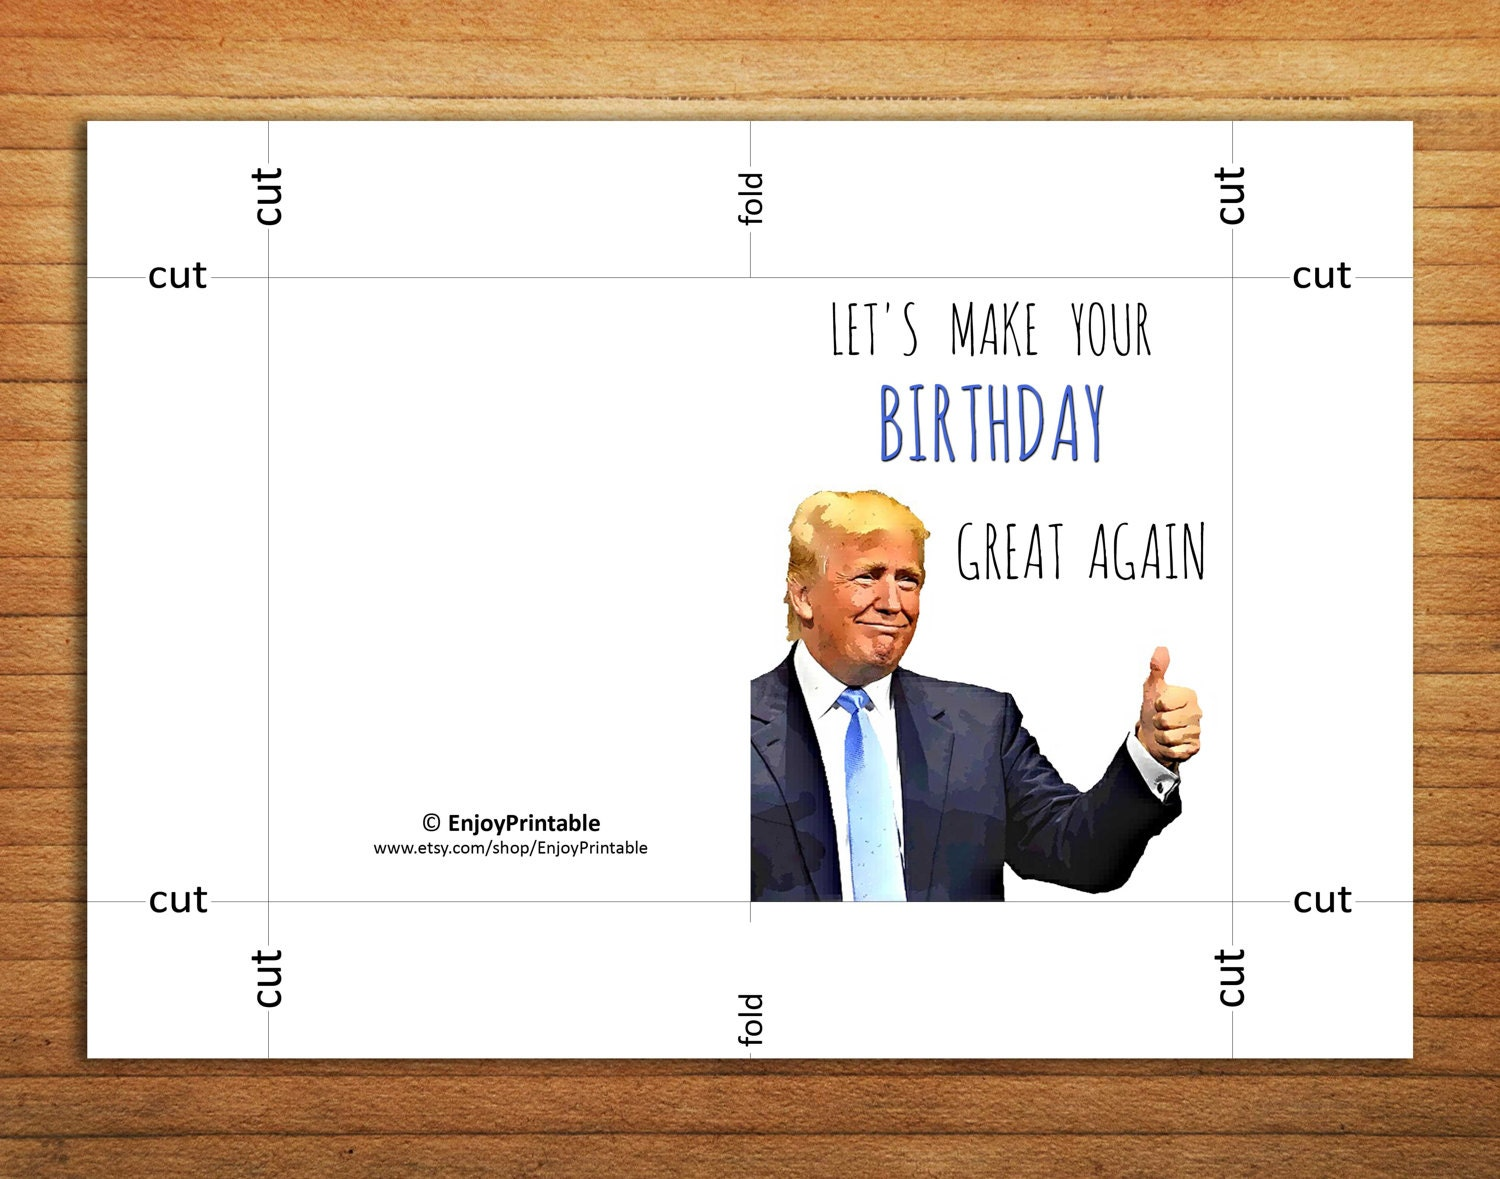 photo about Donald Trump Birthday Card Printable titled Donald Trump Birthday Card: Donald Trump Birthday Card Amusing